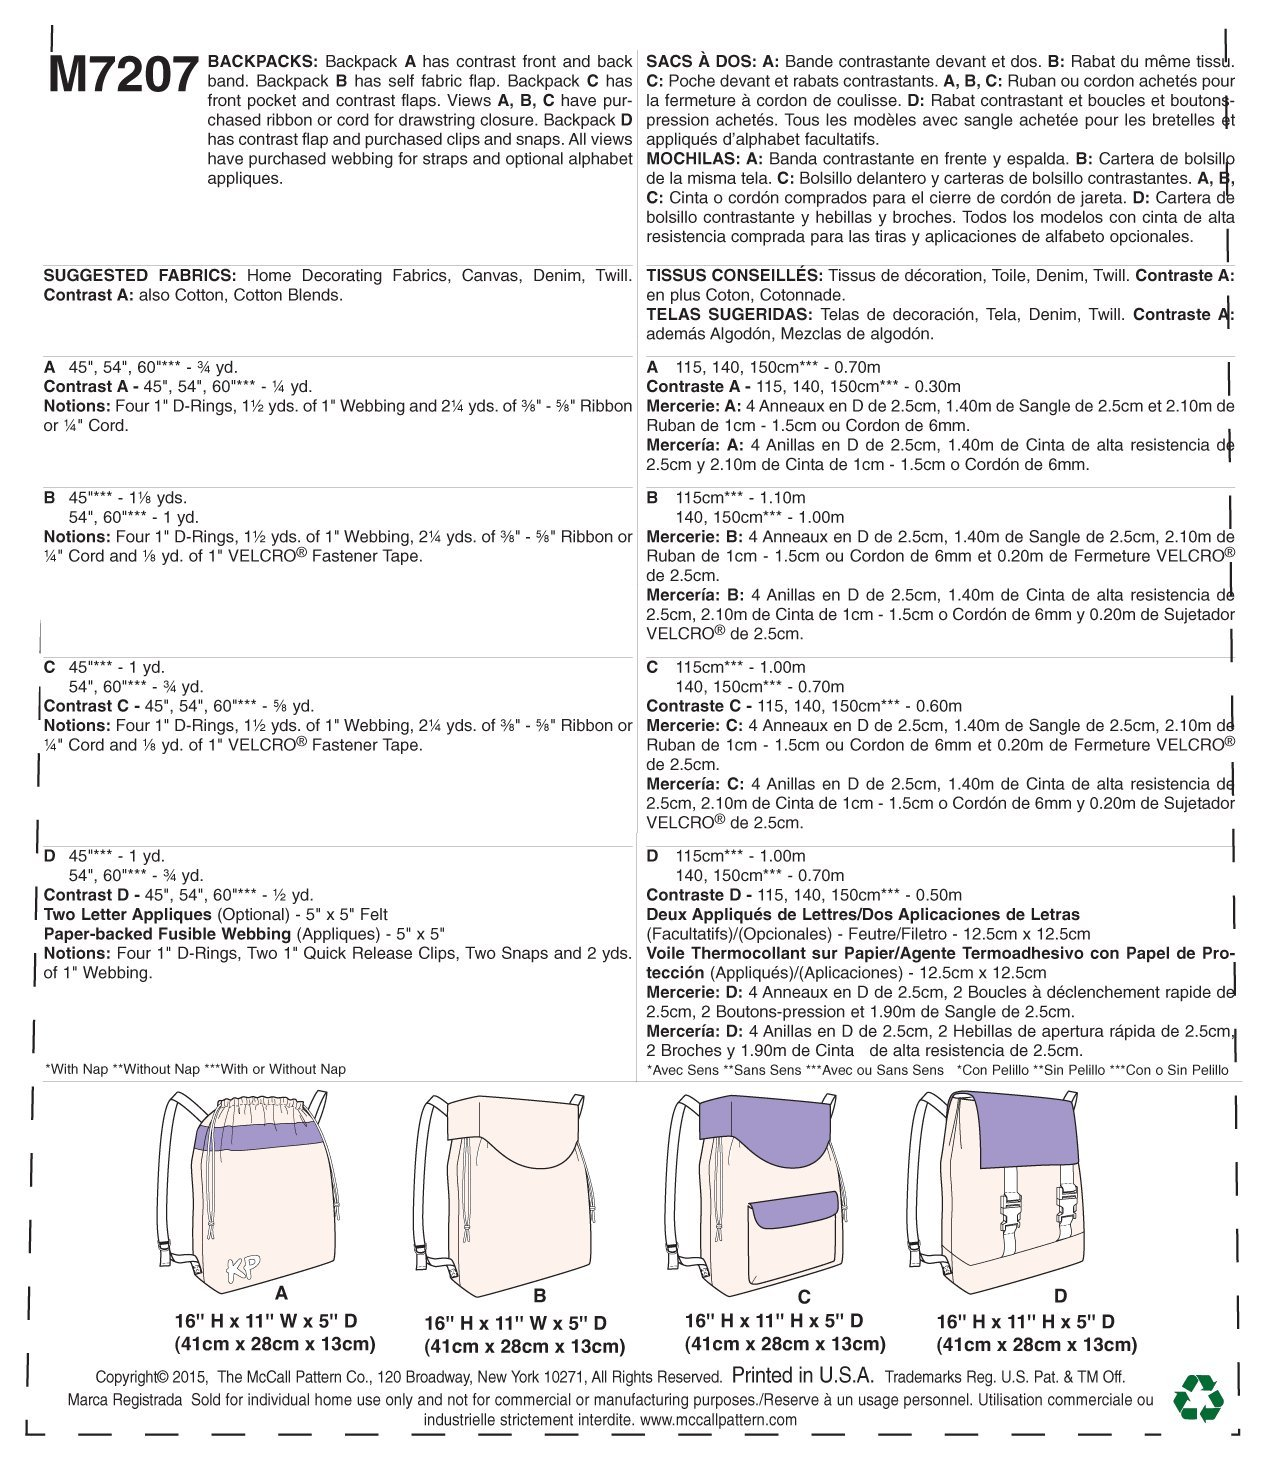 Amazon.com: McCalls Patterns M7207 Backpacks Sewing Template, One Size Only: Arts, Crafts & Sewing